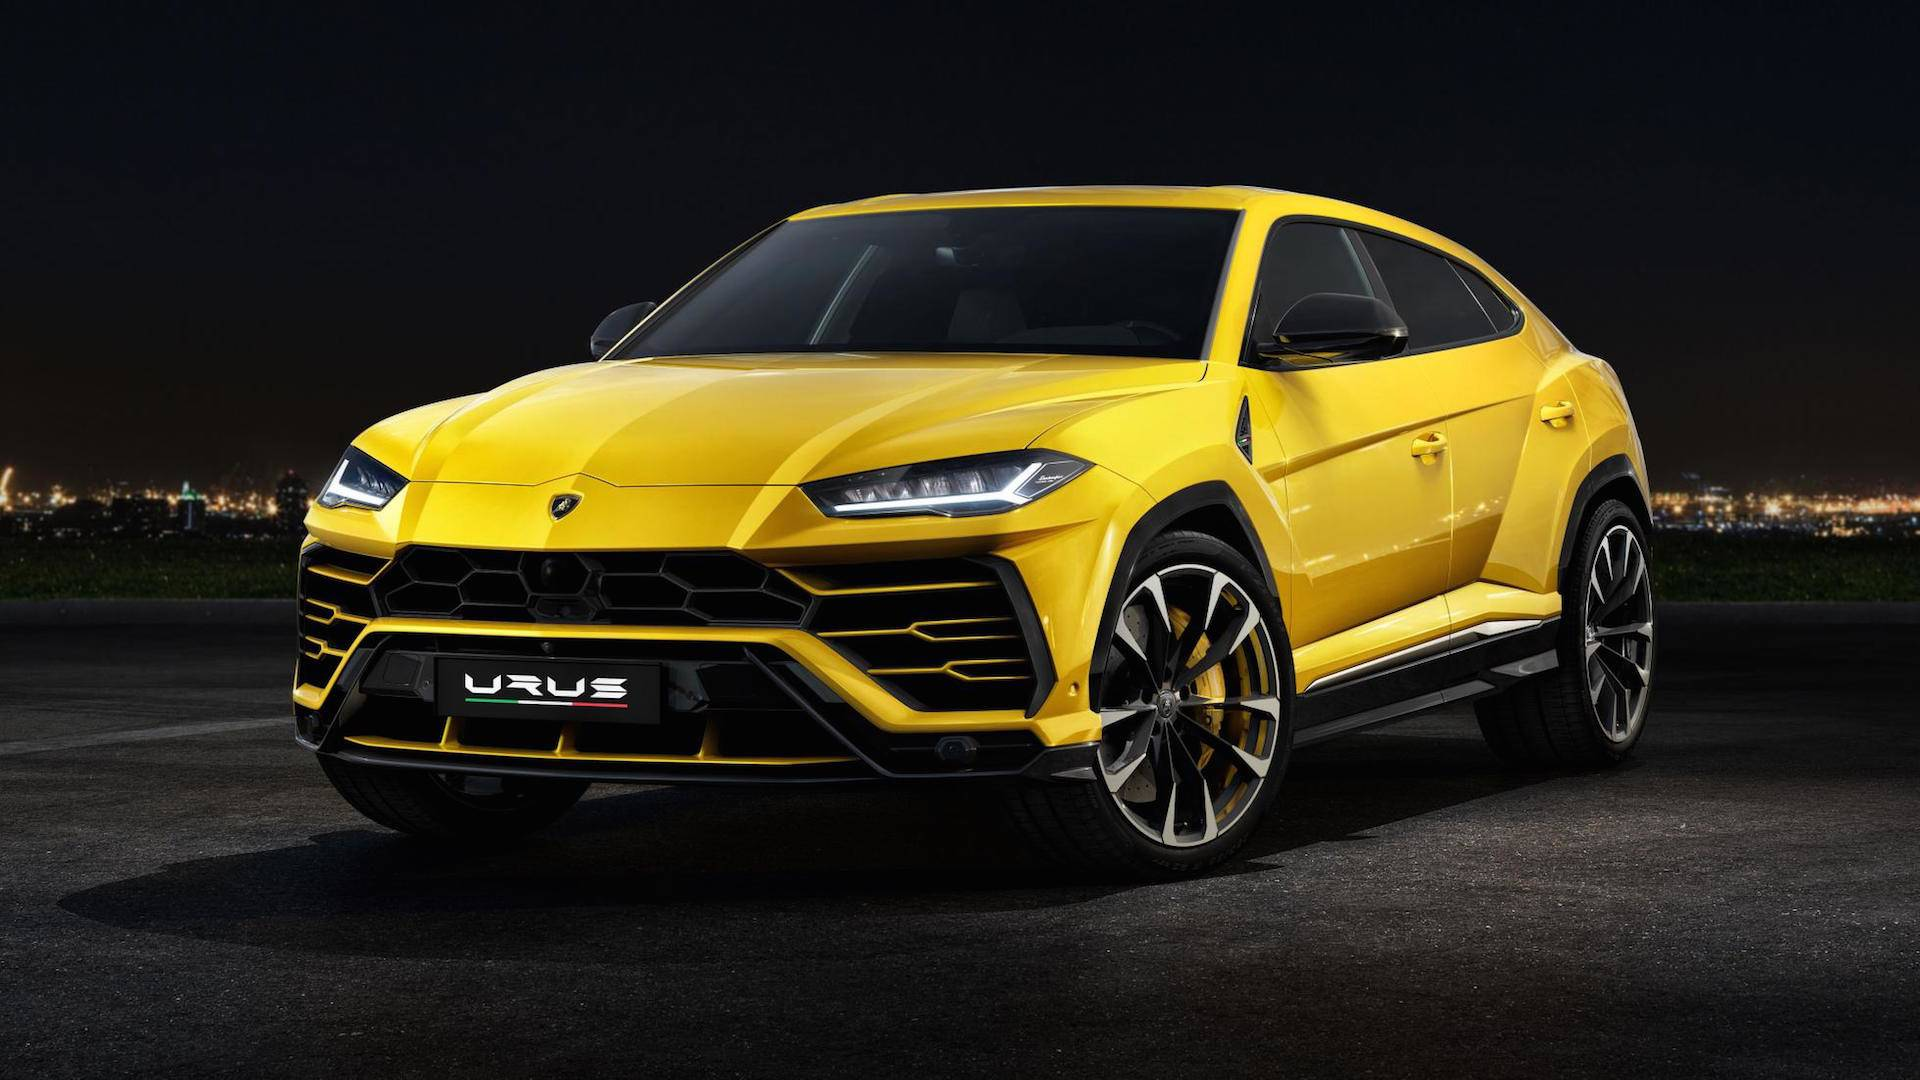 2018 Lamborghini Urus Usually Sells For 240 000 Or More With Options Autoevolution